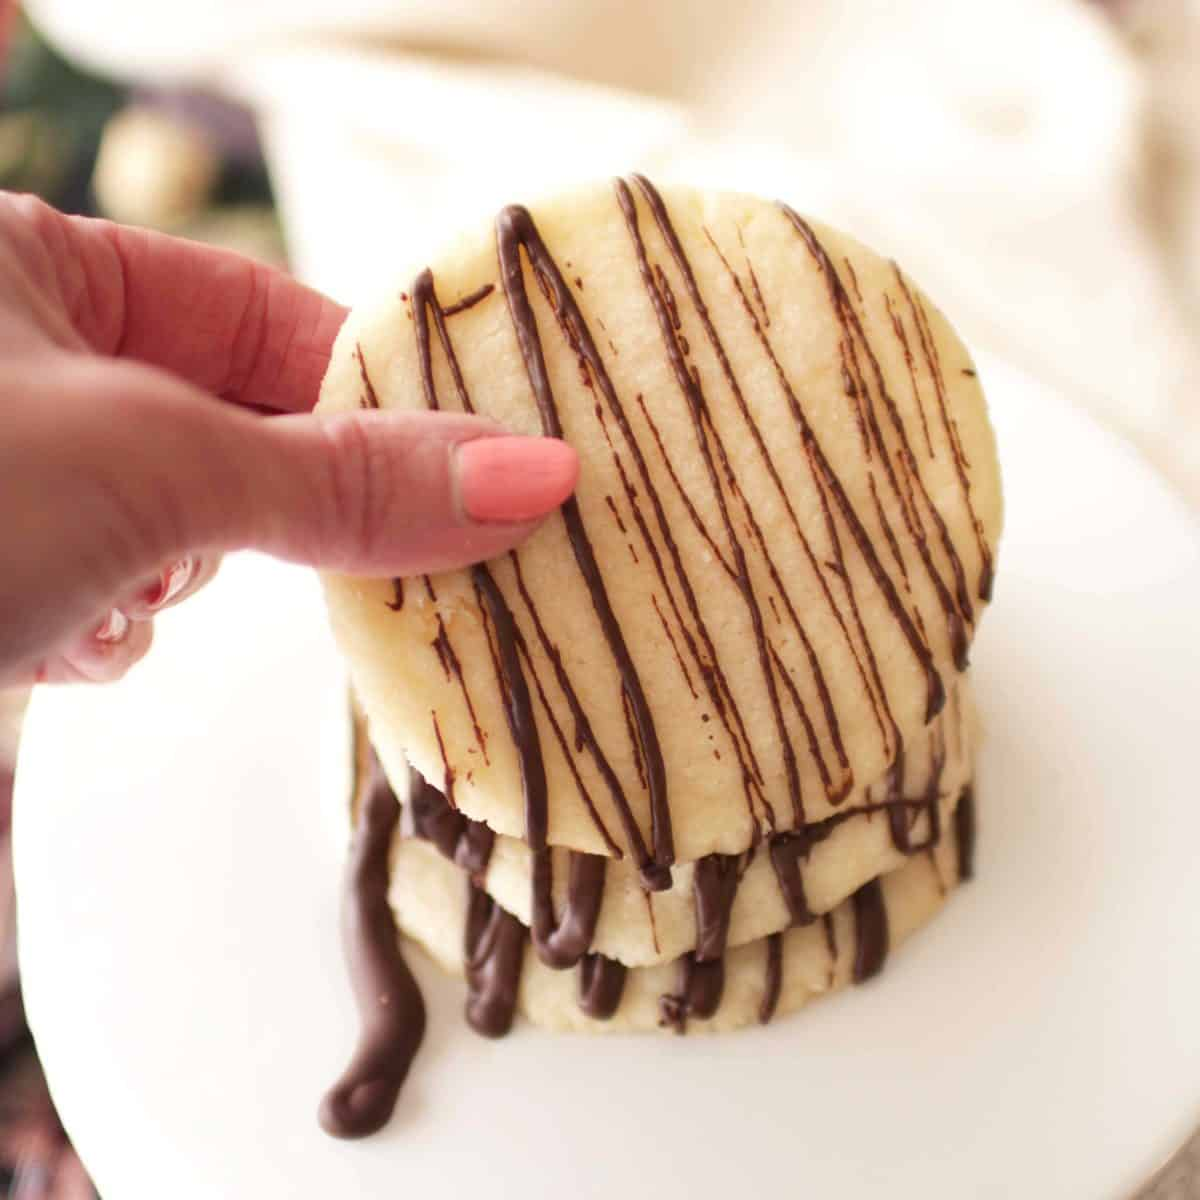 fingers holding up a shortbread cookie with a chocolate drizzle.